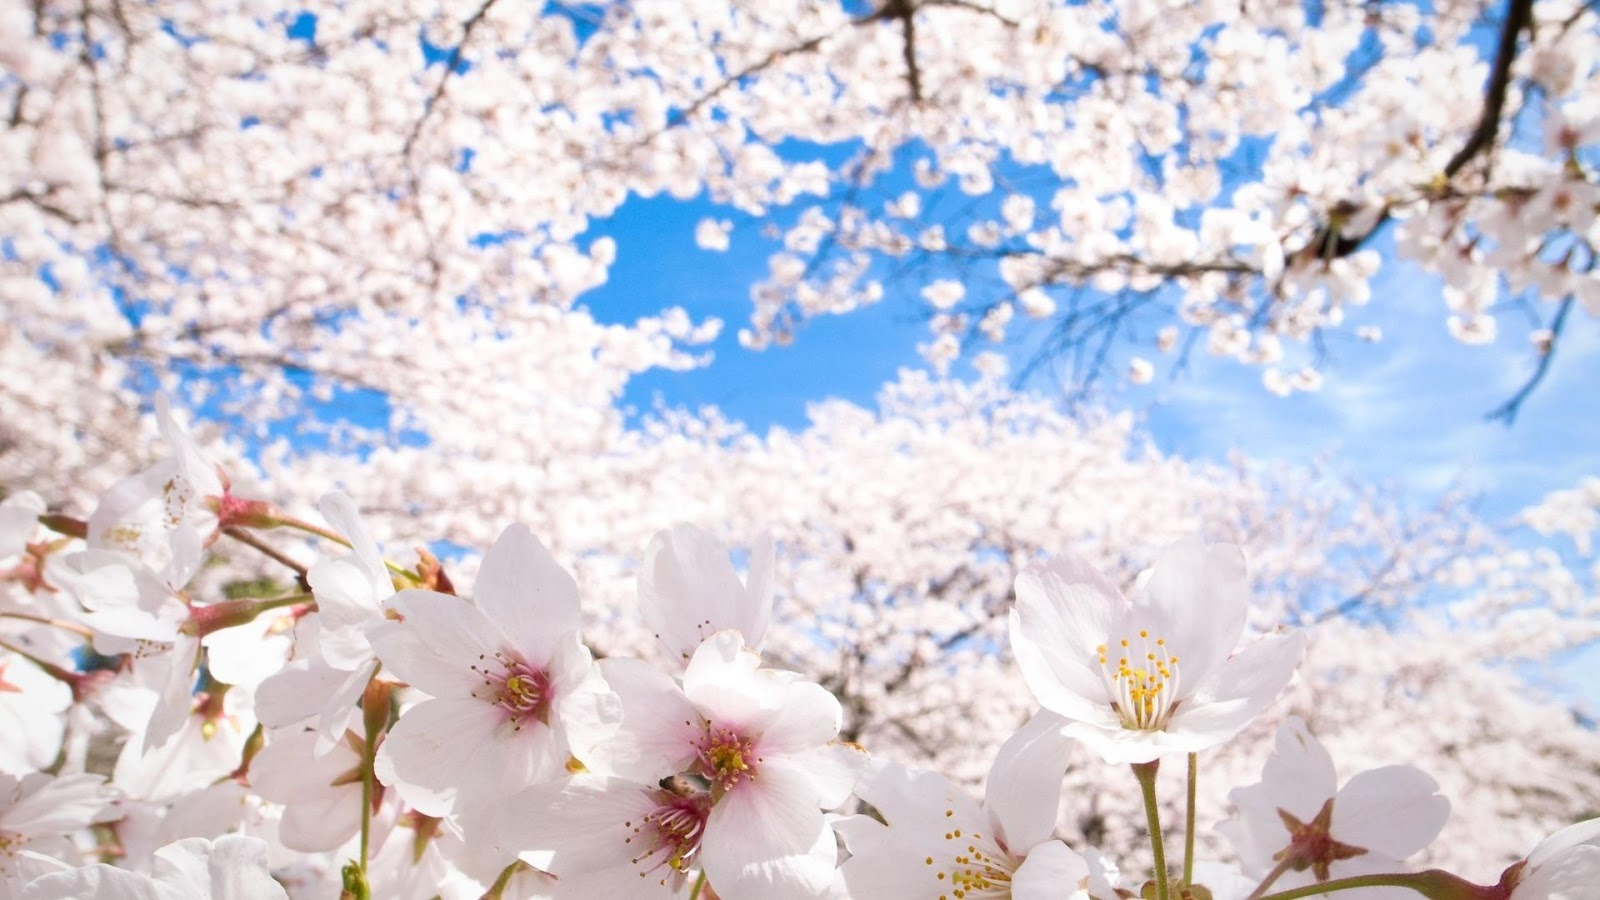 Cherry Blossom Wallpaper Apl Android Di Google Play